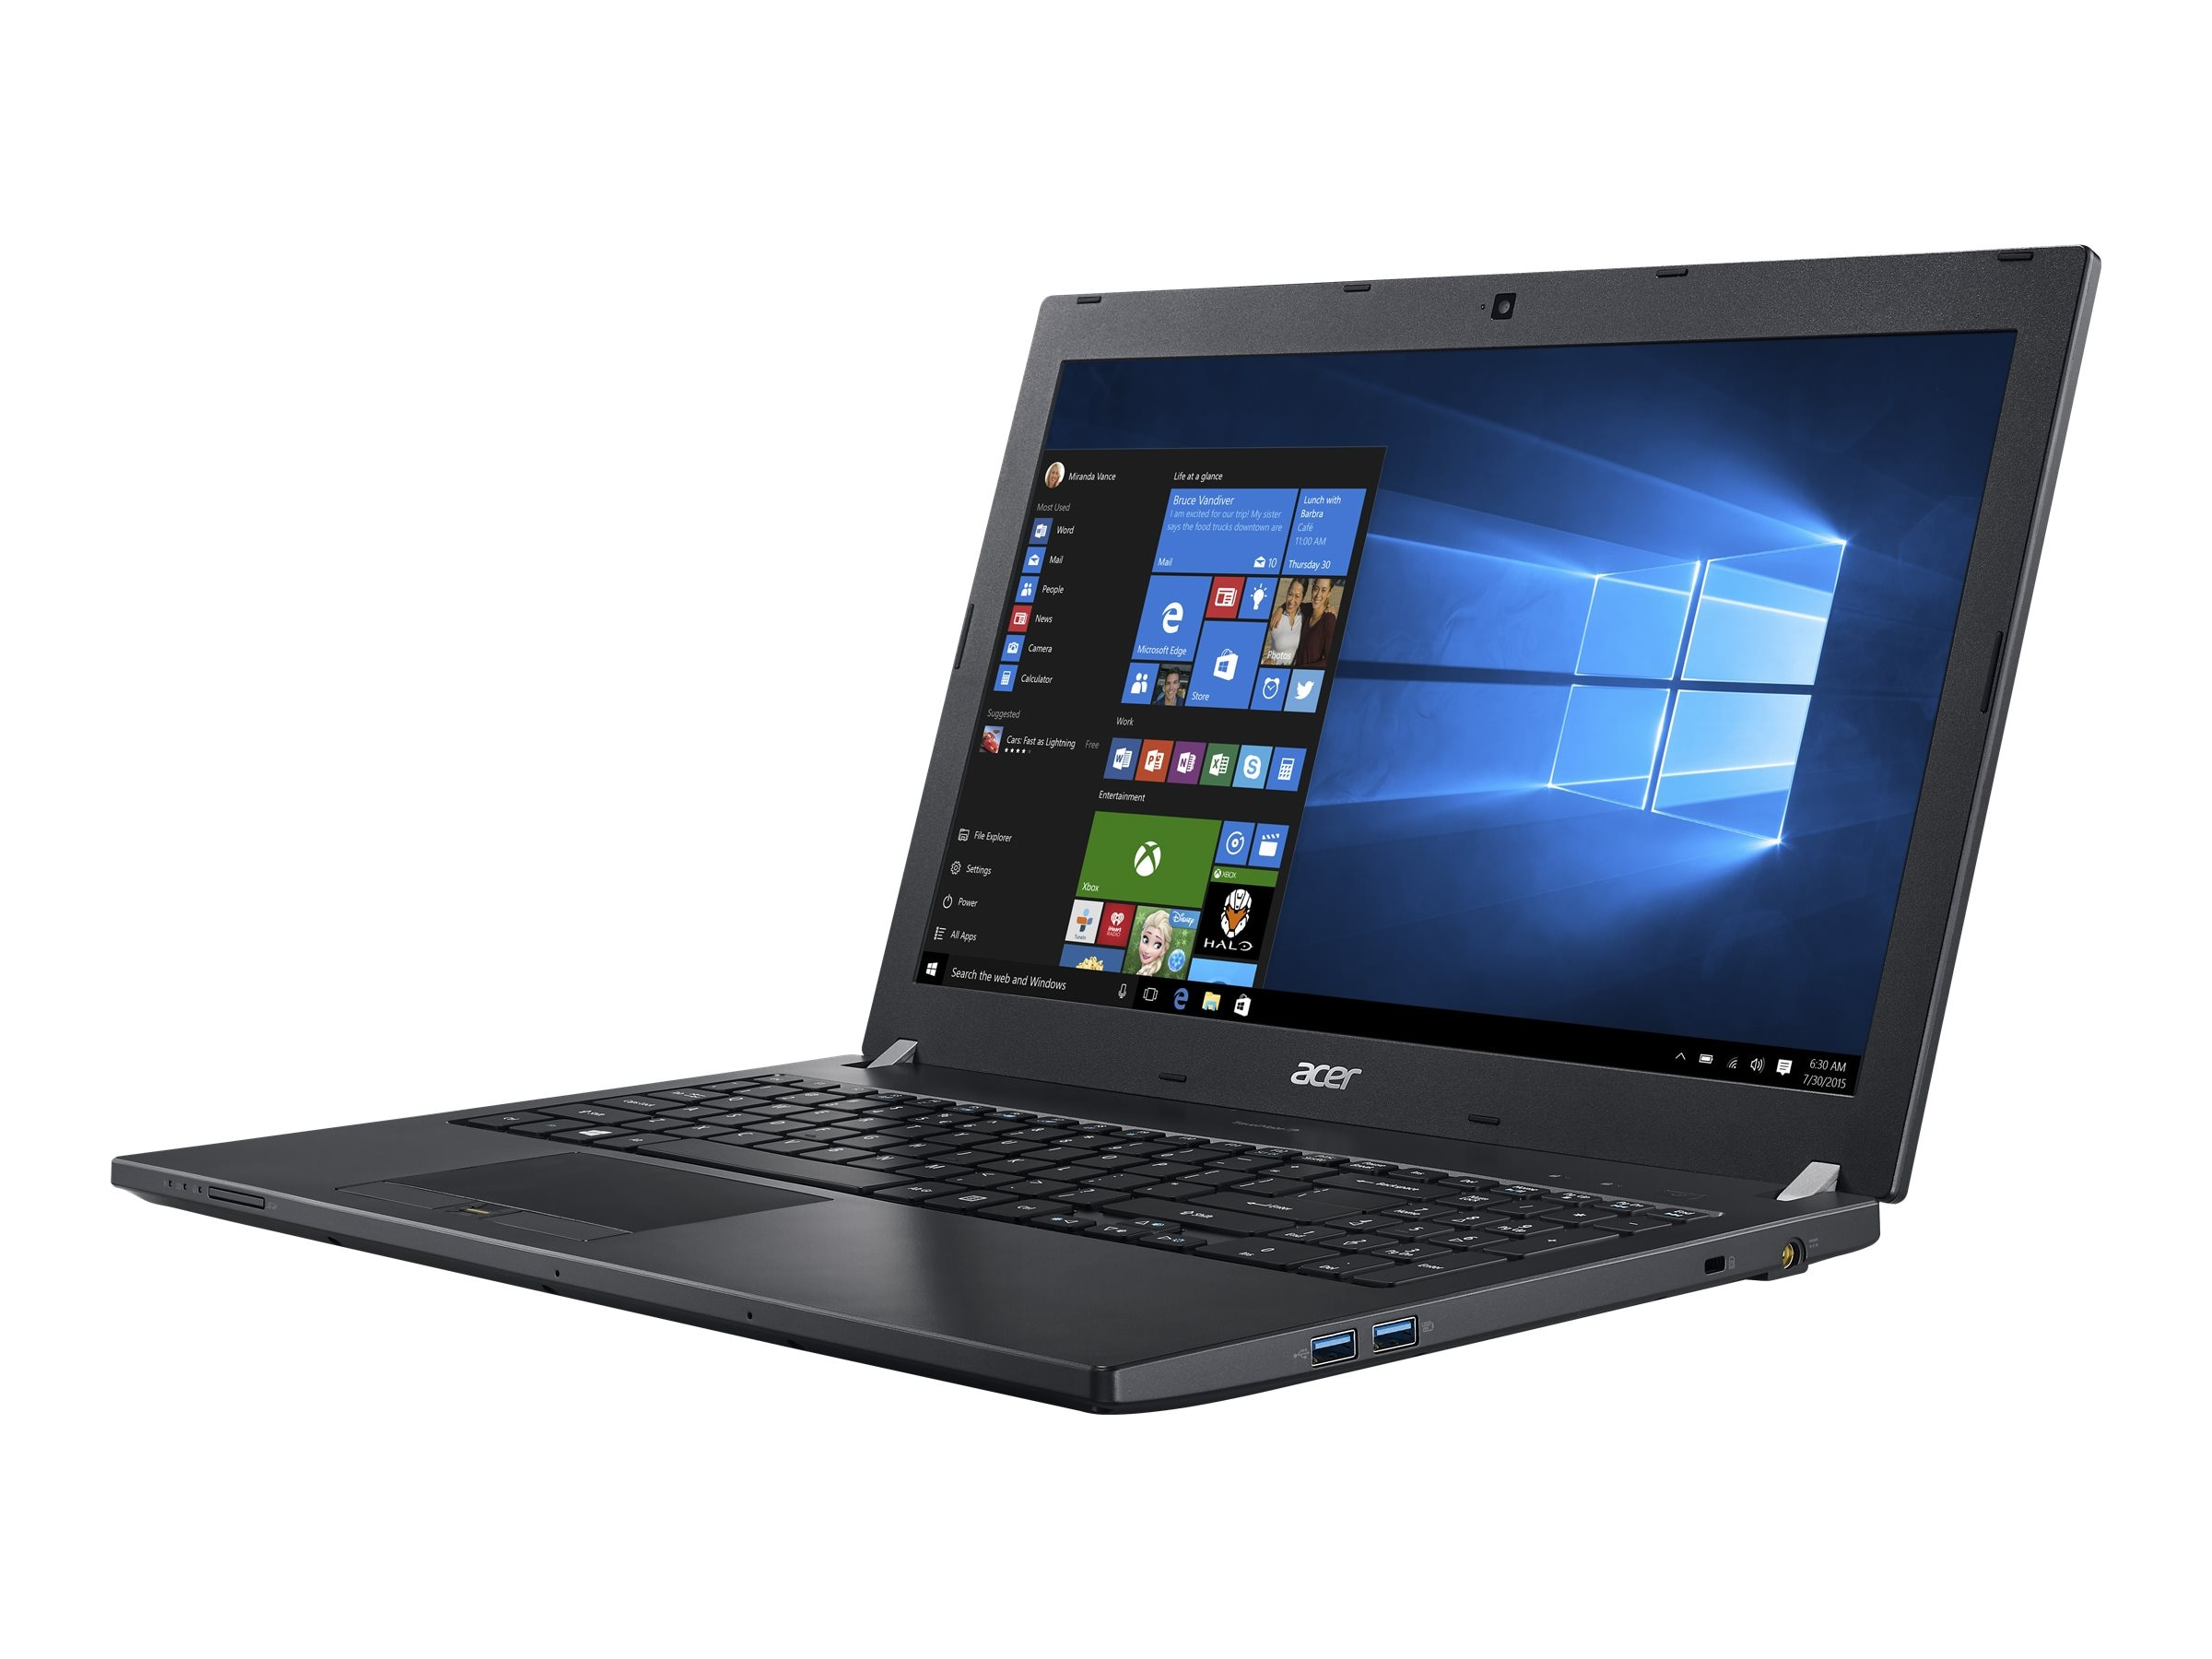 Acer NX.VCVAA.003 Image 1